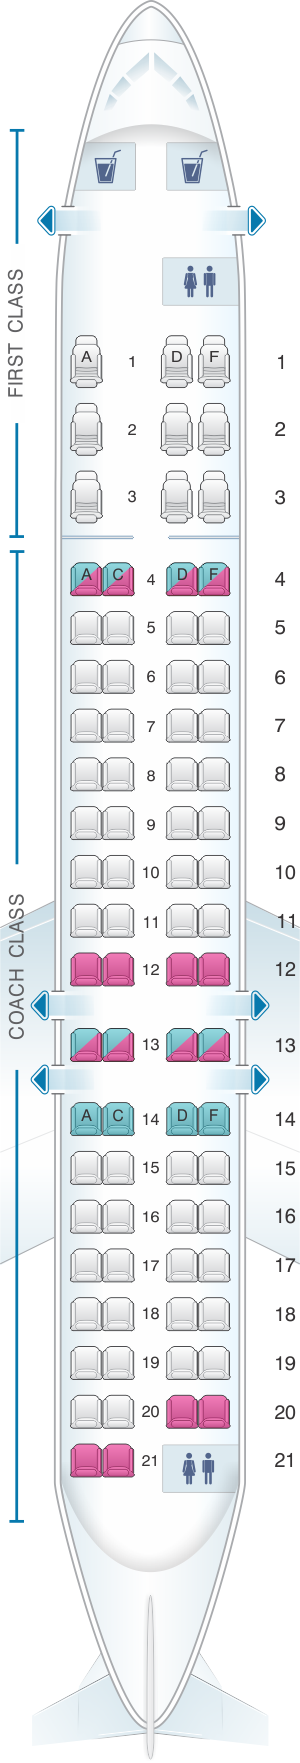 Seat map for US Airways Bombardier Canadair CRJ 900 79pax